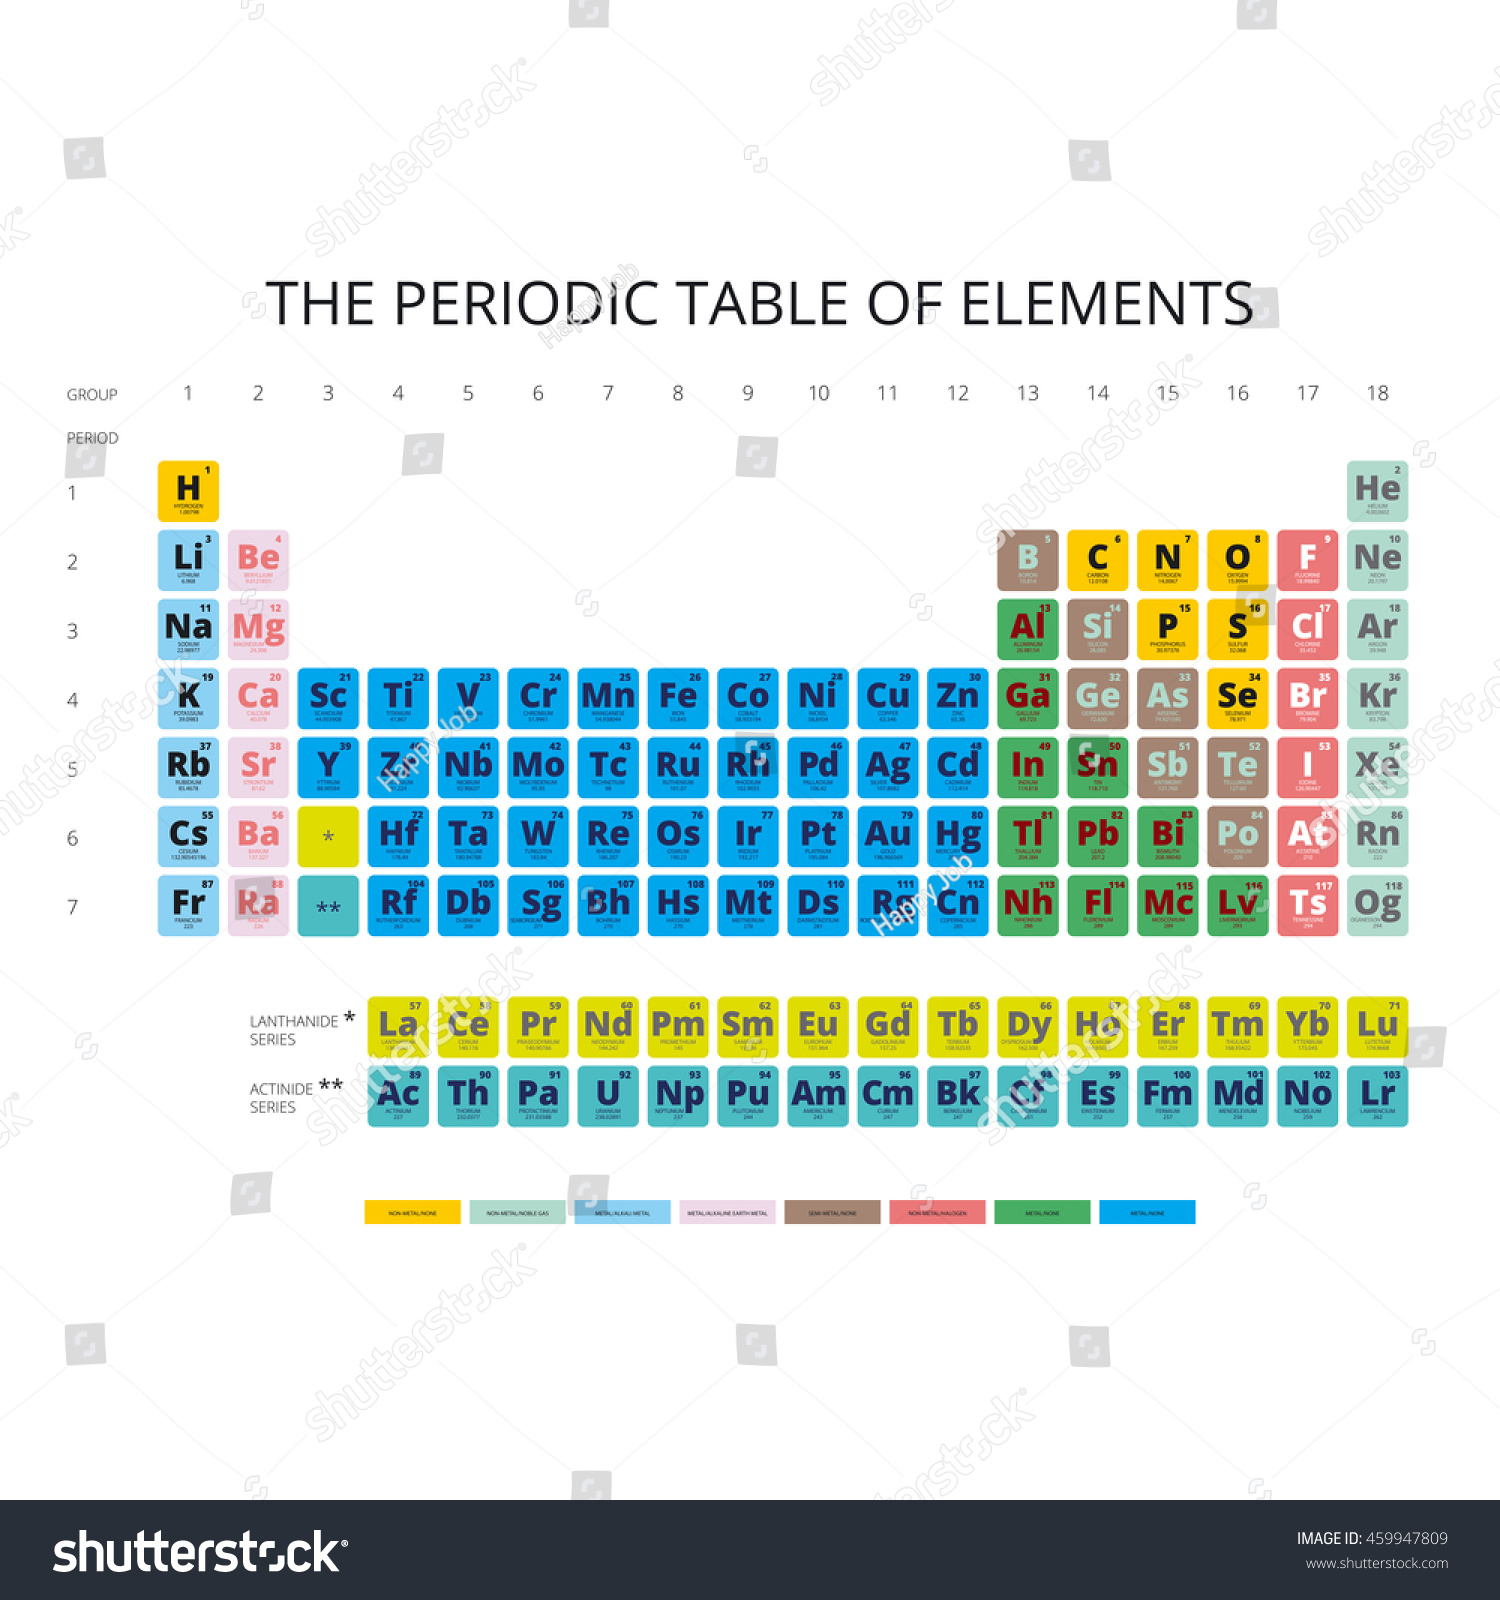 Periodic table elements symbol atomic numbercomplete stock vector periodic table of the elements with symbol and atomic numberplete periodic table chemistry biocorpaavc Images